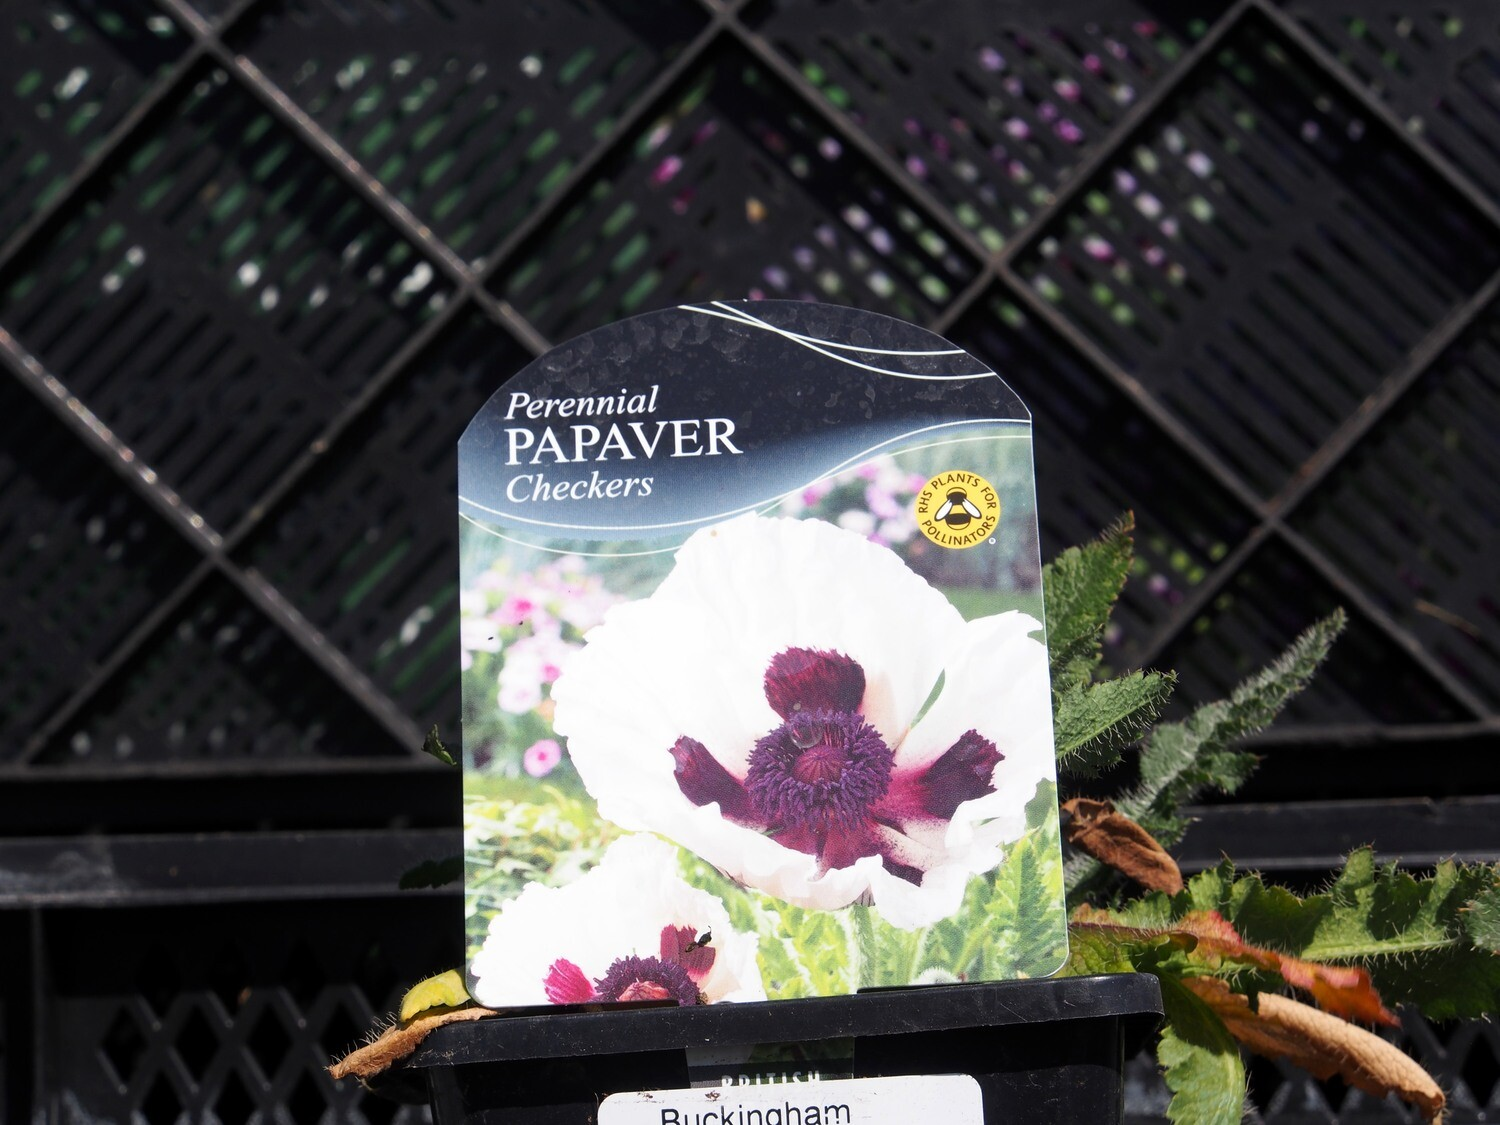 Papaver Checkers